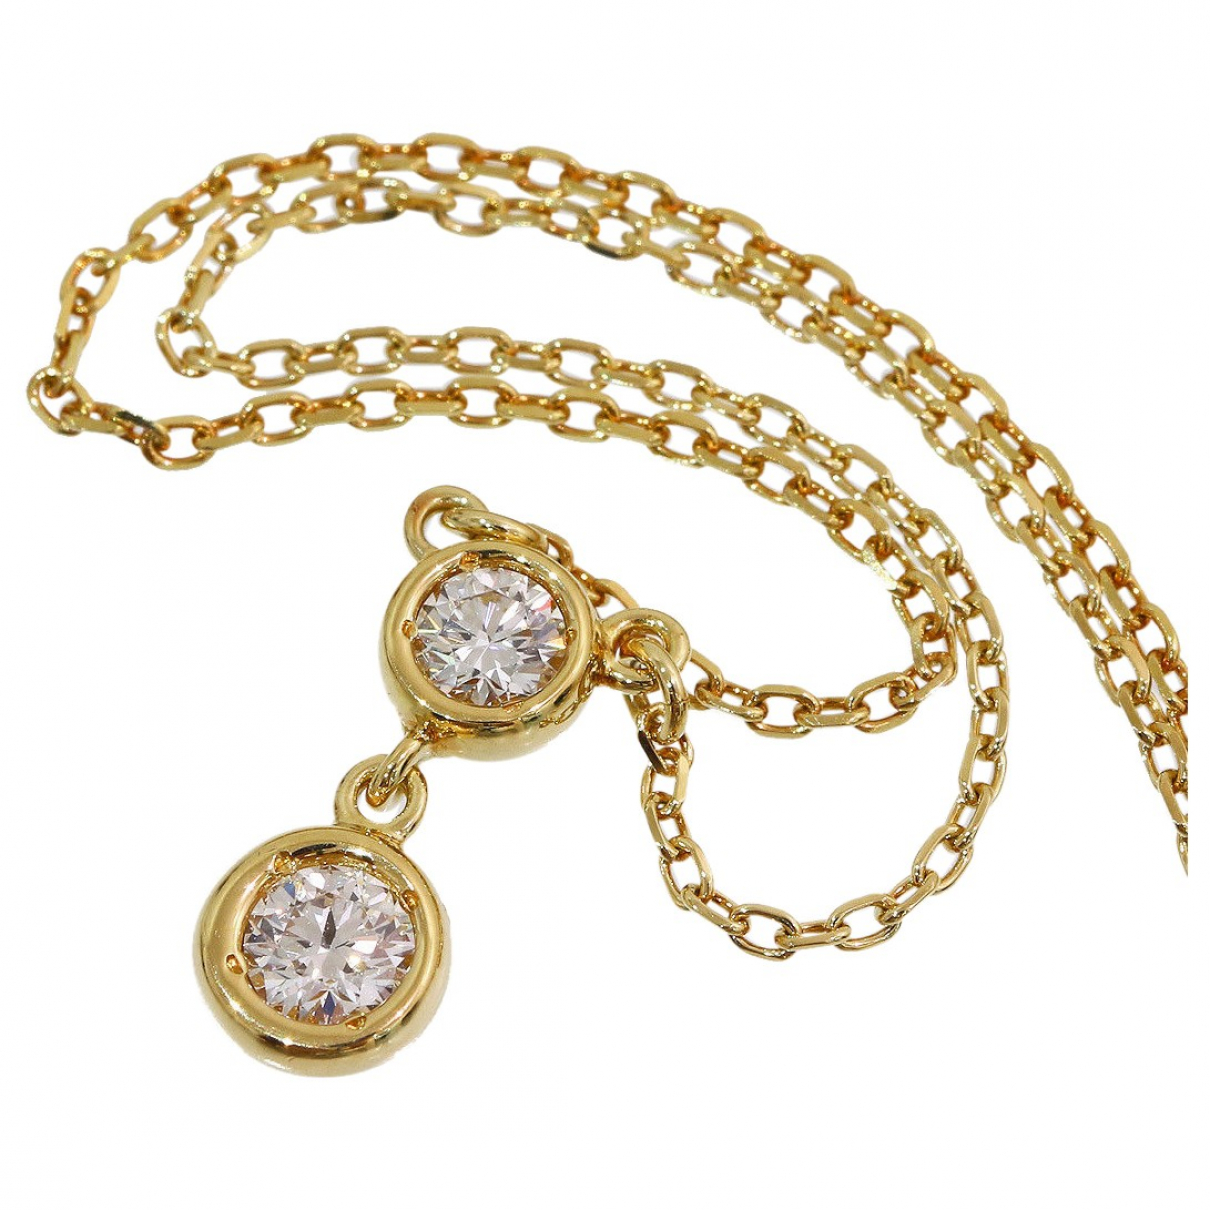 Mikimoto \N Kette in Gelbgold